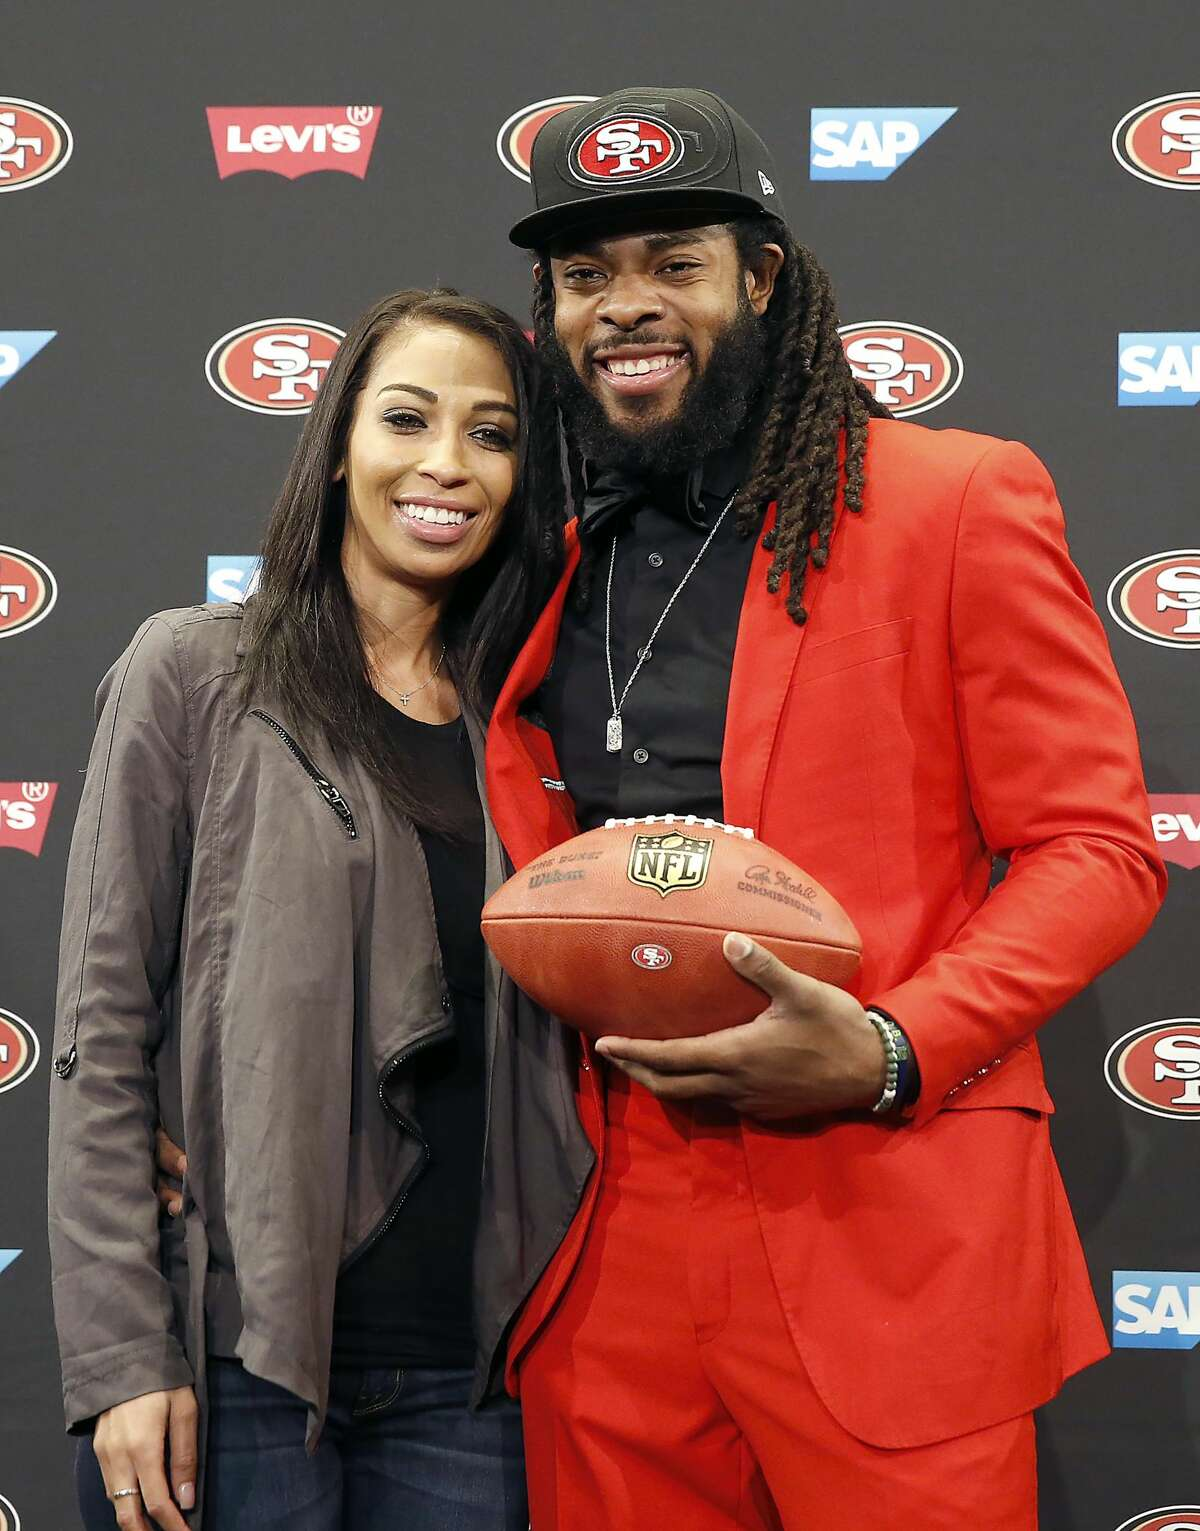 San Francisco 49ers new cornerback Richard Sherman, right, poses for a photo with his fiancee Ashley Moss after answering questions during an NFL football news conference in Santa Clara, Calif., Tuesday, March 20, 2018. Sherman agreed to a three-year deal with the 49ers.